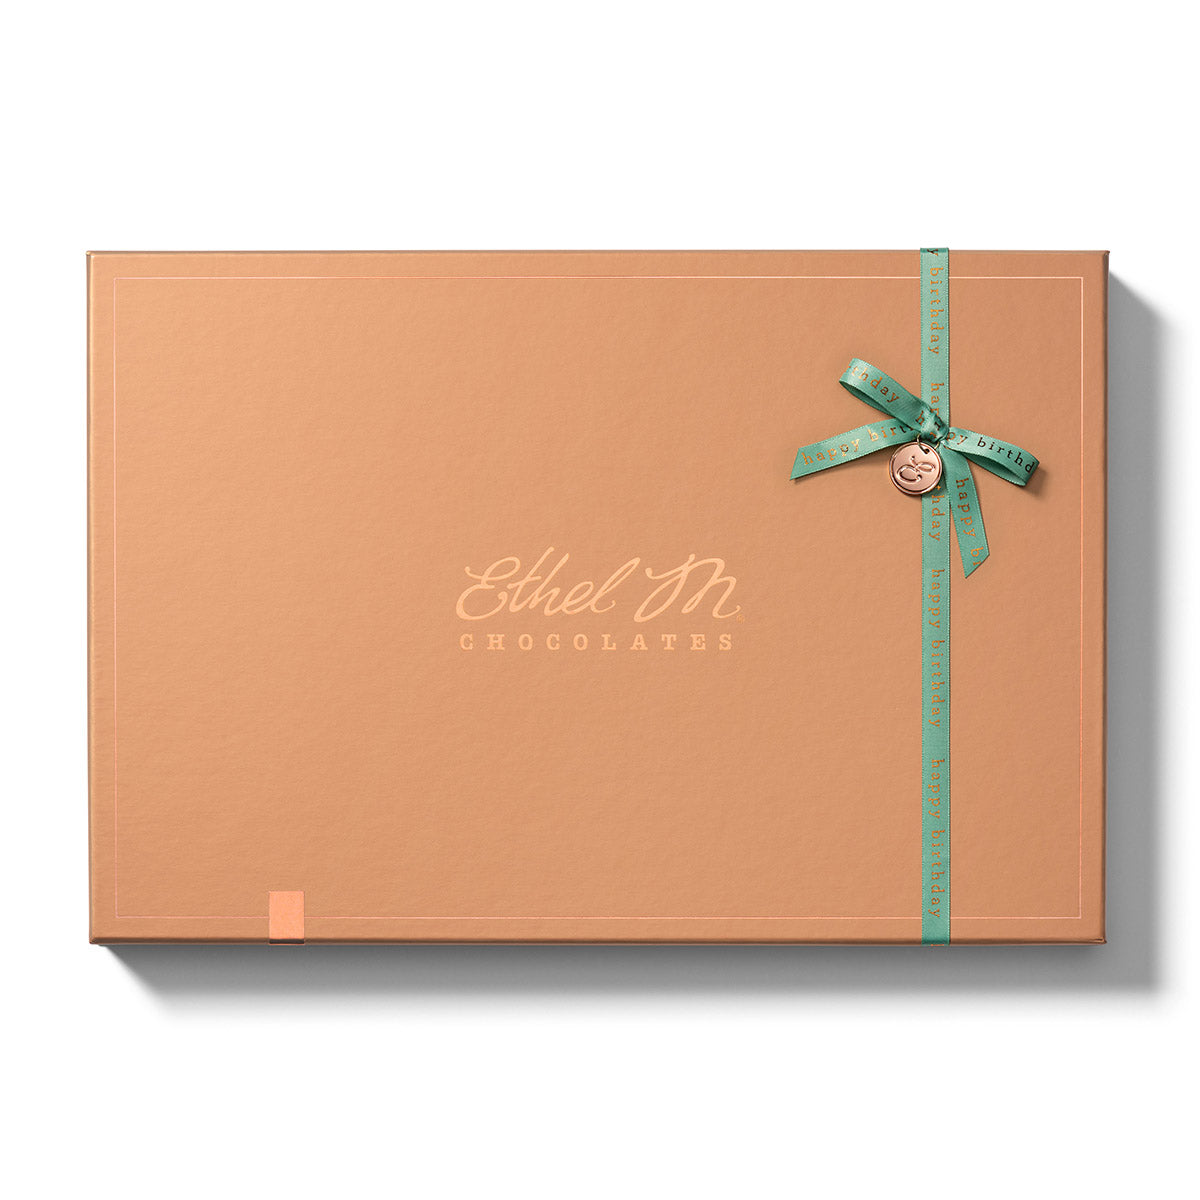 Design your own Chocolate Box with Happy Birthday ribbon